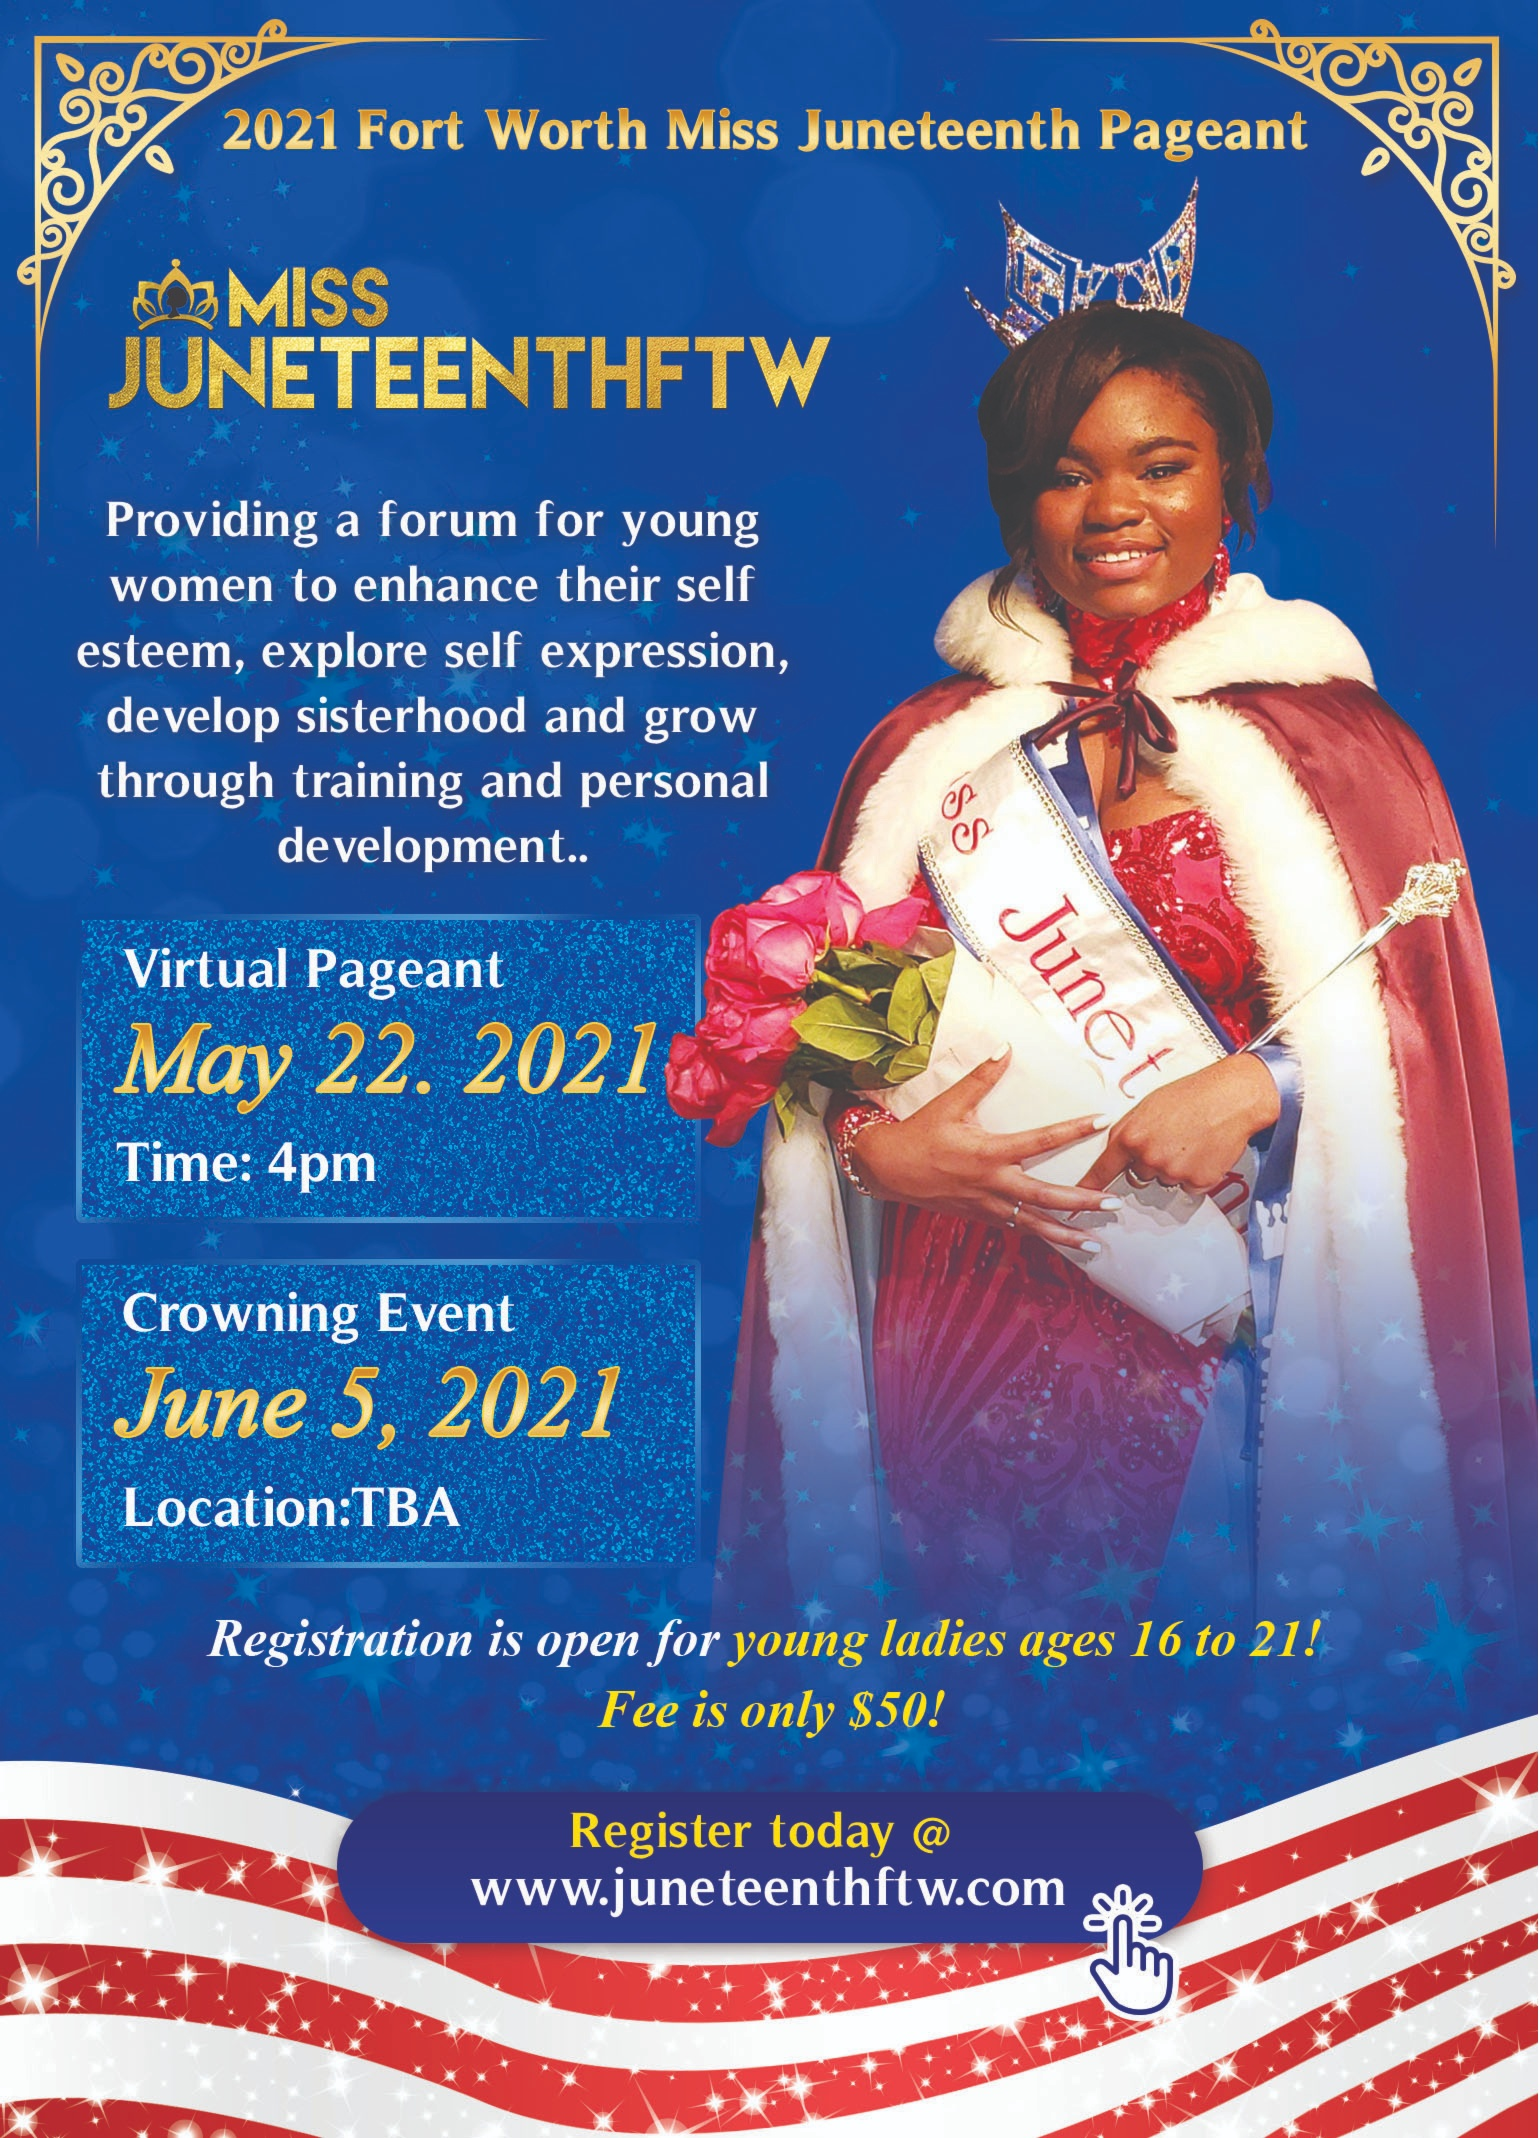 2021 Miss Juneteenth Pageant